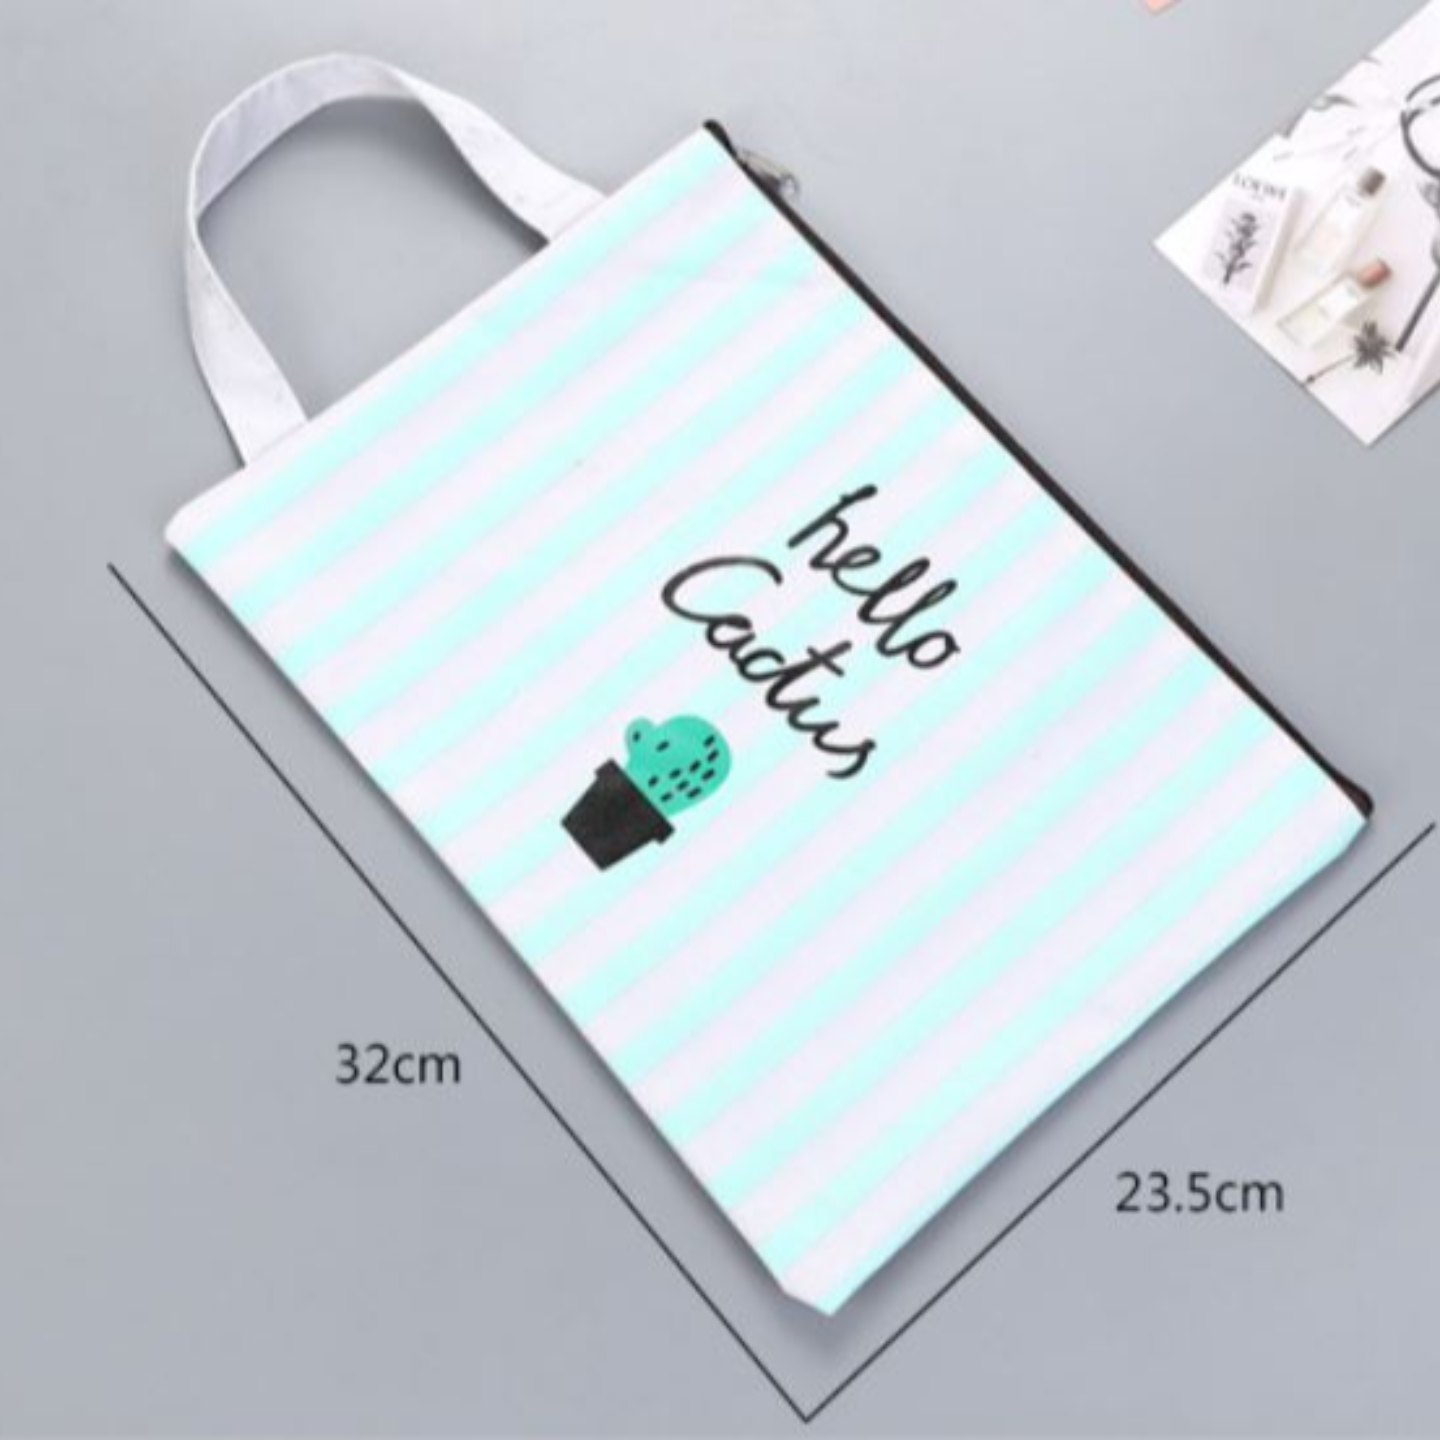 Cactus Document Bag with Packaging and Sticker